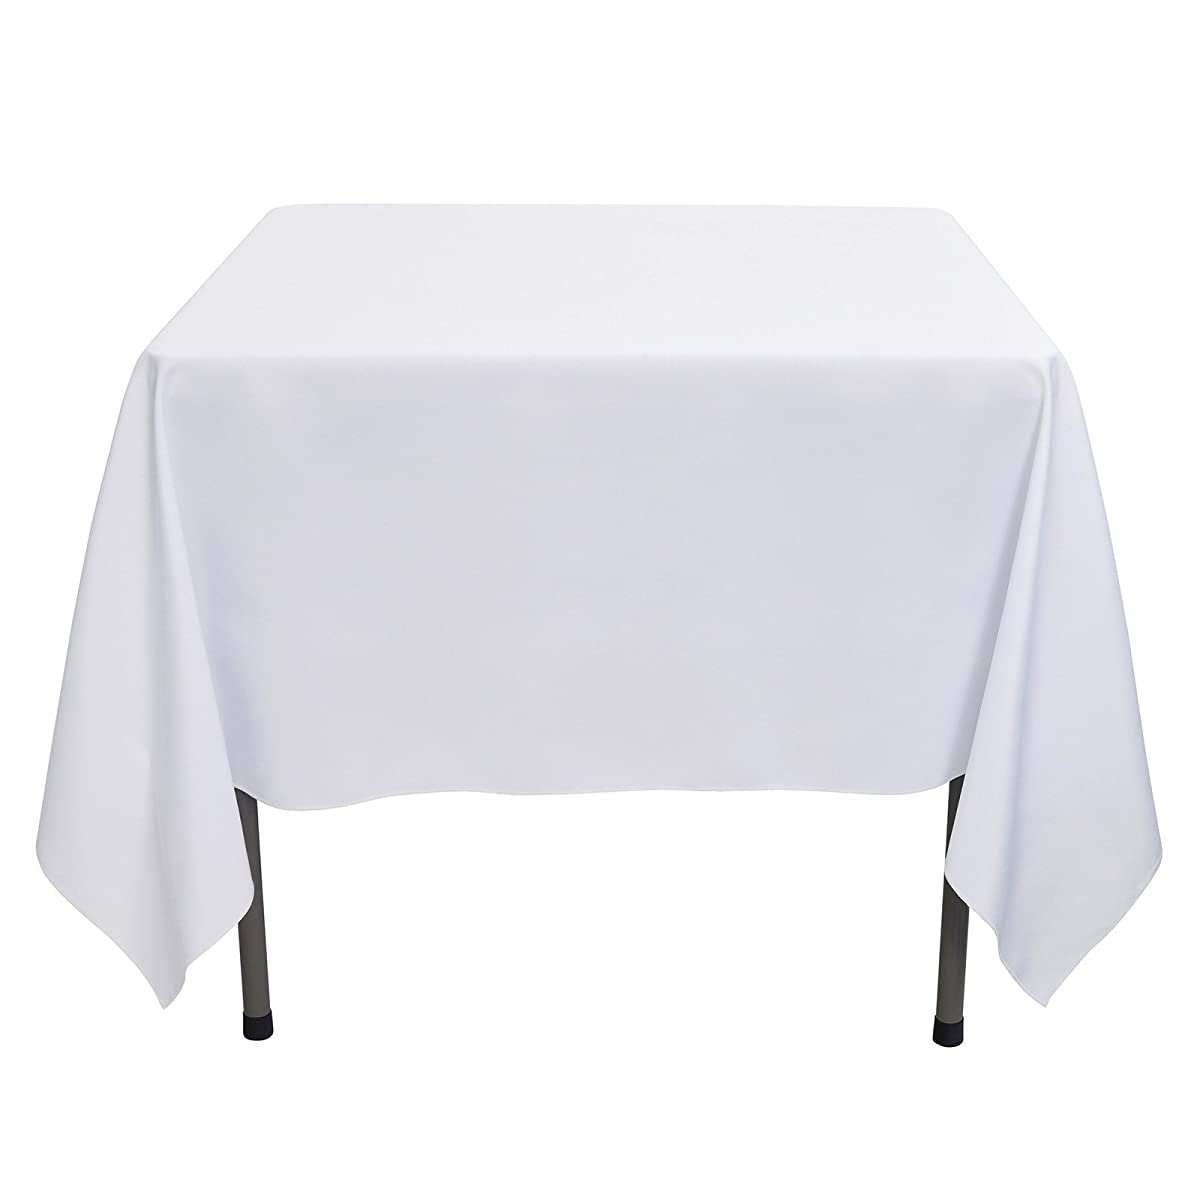 VEEYOO 70 inch Square Solid Polyester Tablecloth for Wedding Restaurant Party, White